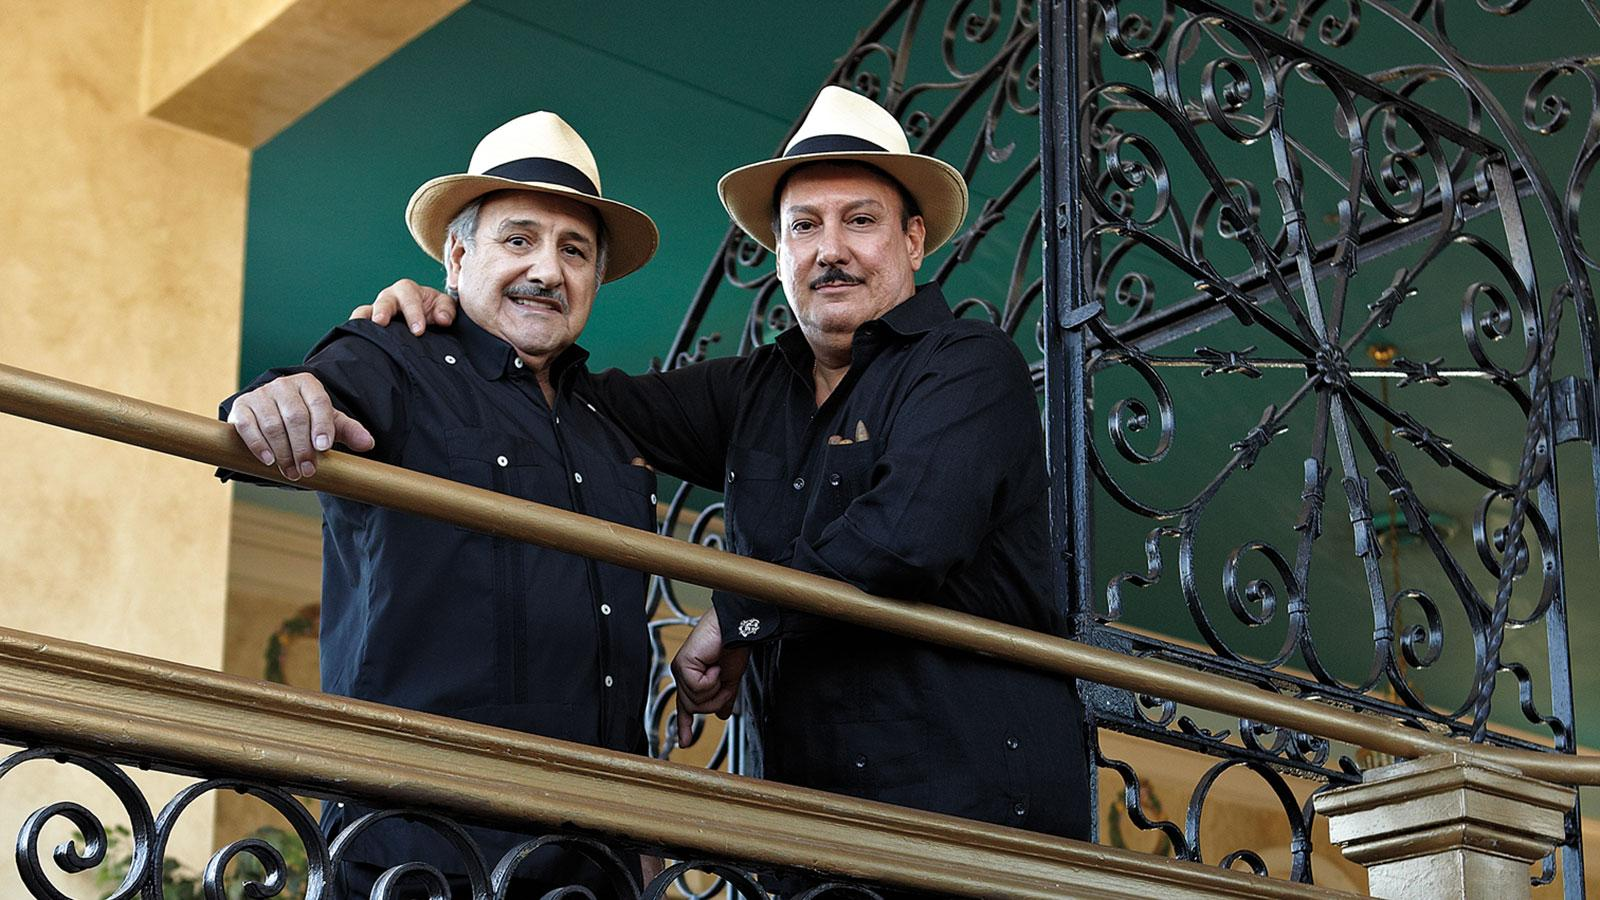 Carlos Fuente Sr. and Carlos Fuente Jr., the cigarmaking team behind the brand.